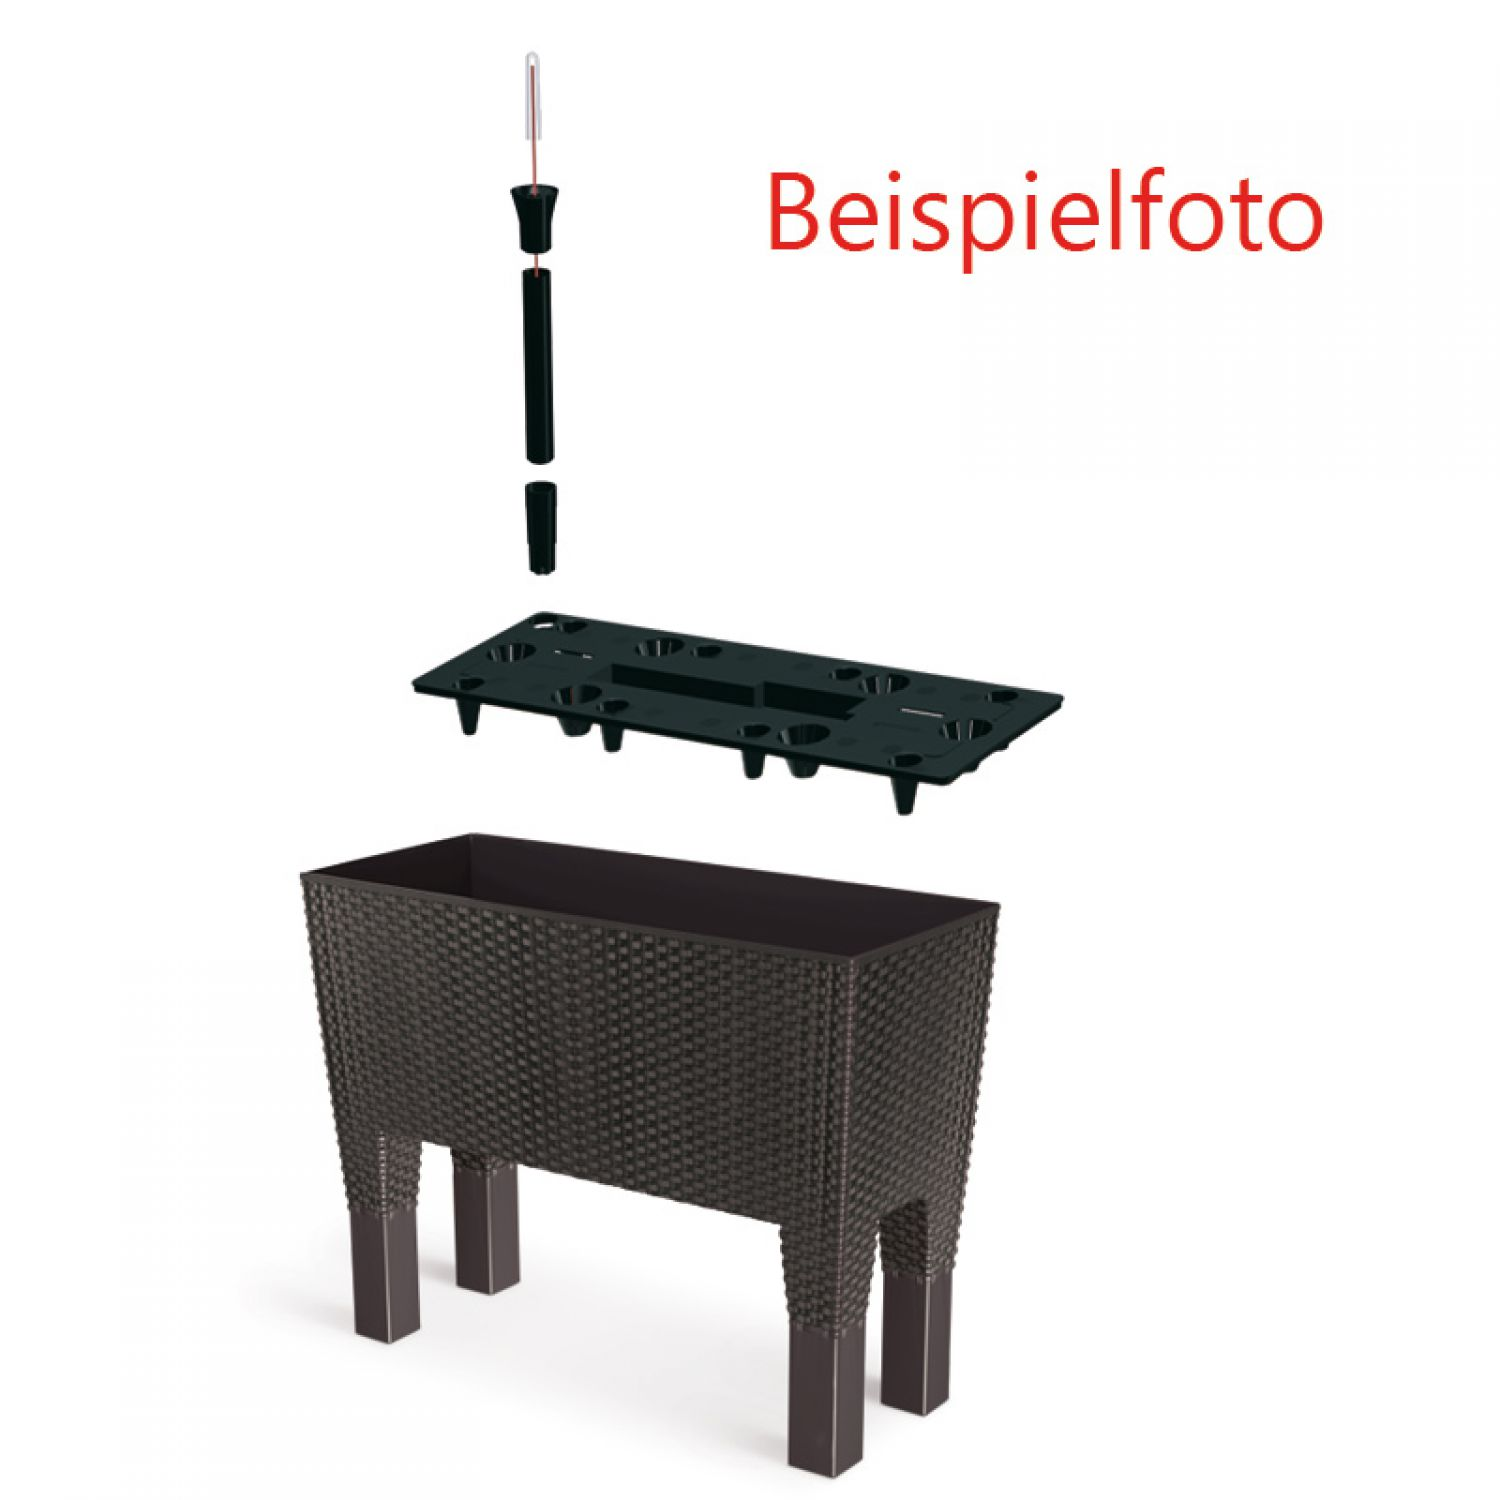 blumenkasten mit wasserspeicher blumentopf bertopf. Black Bedroom Furniture Sets. Home Design Ideas